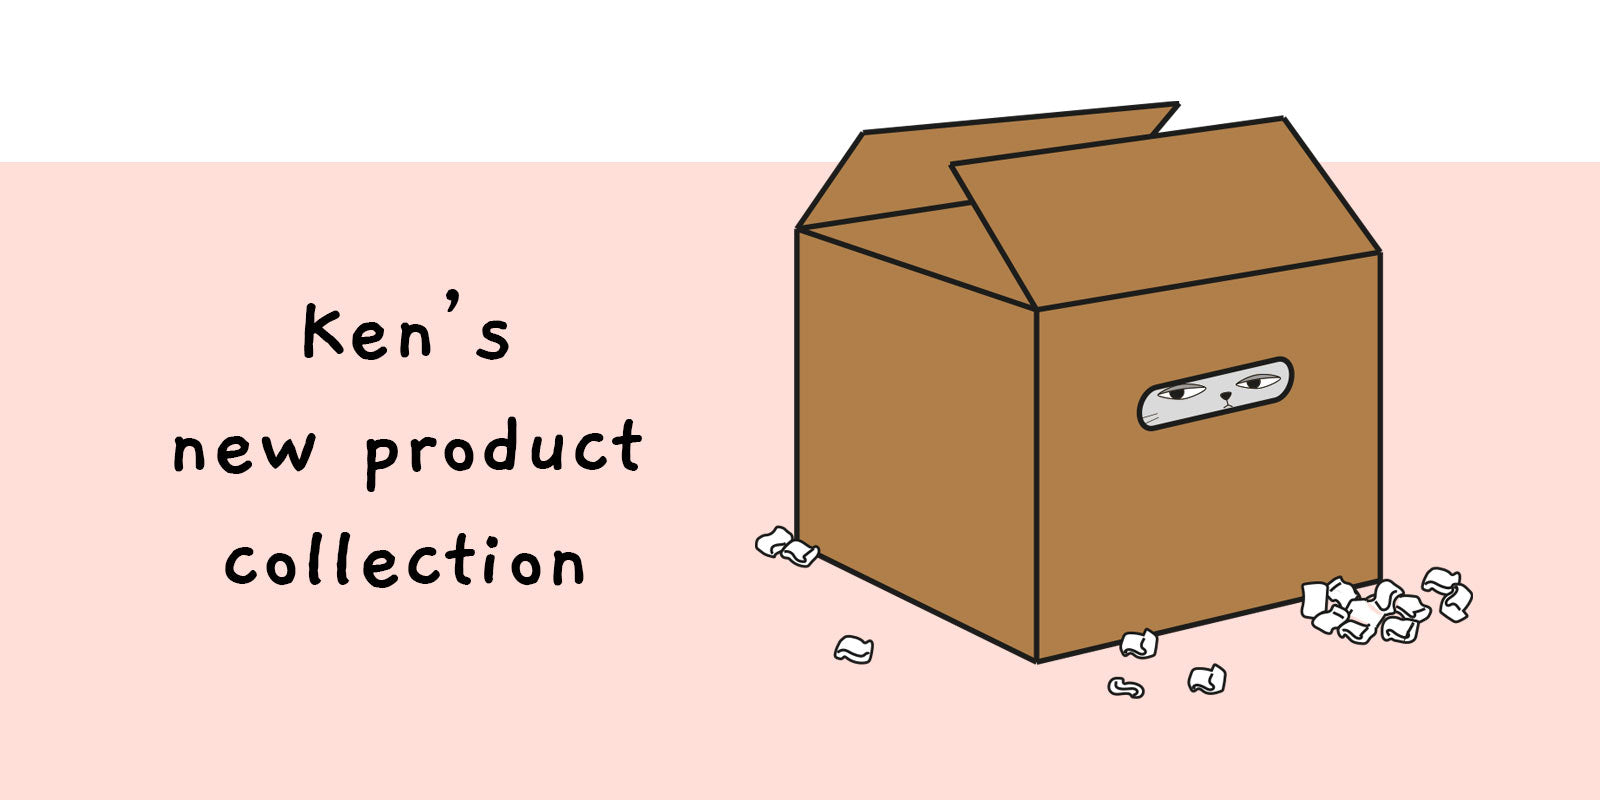 new banner, pink with ken in box and the text saying ken's new product collection